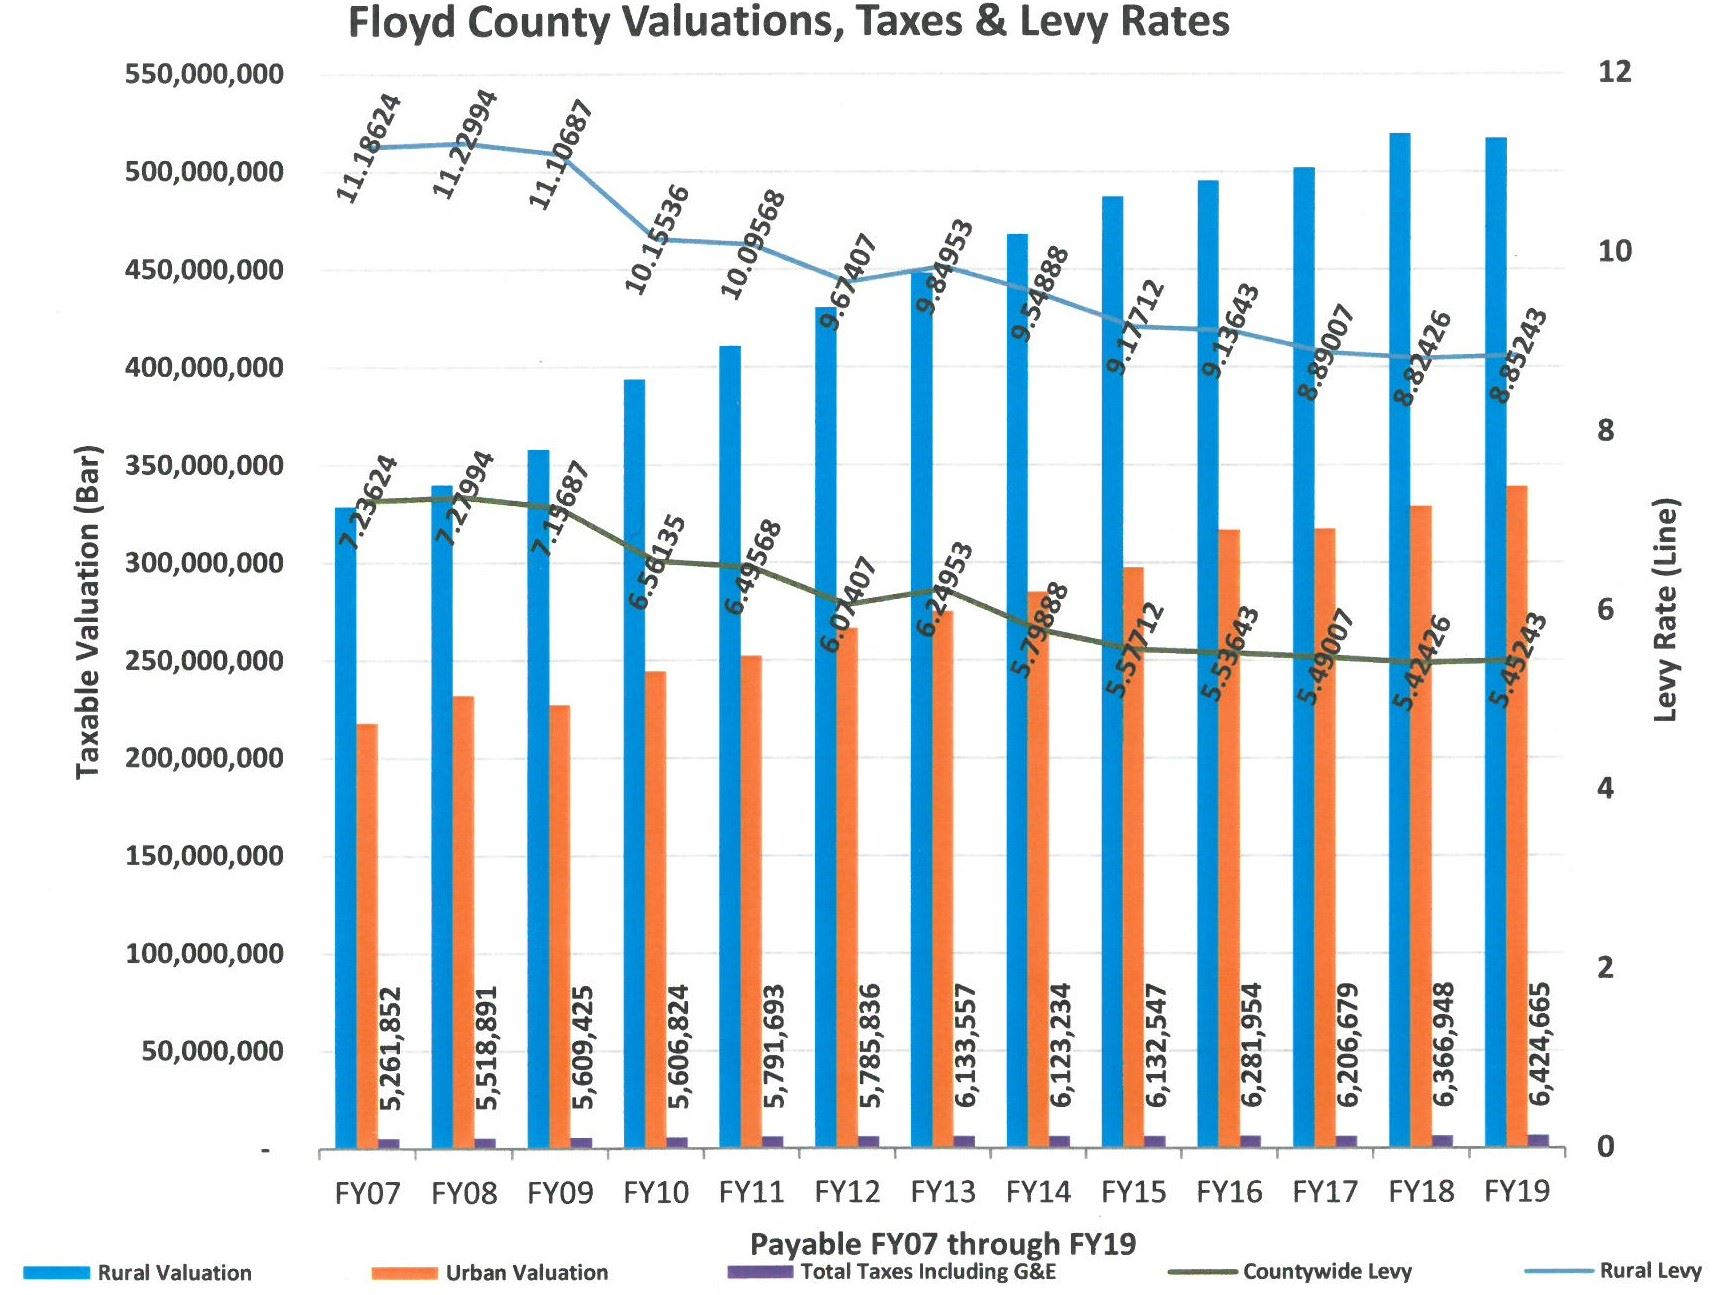 FY19 Valuations-Taxes-Levy Rates